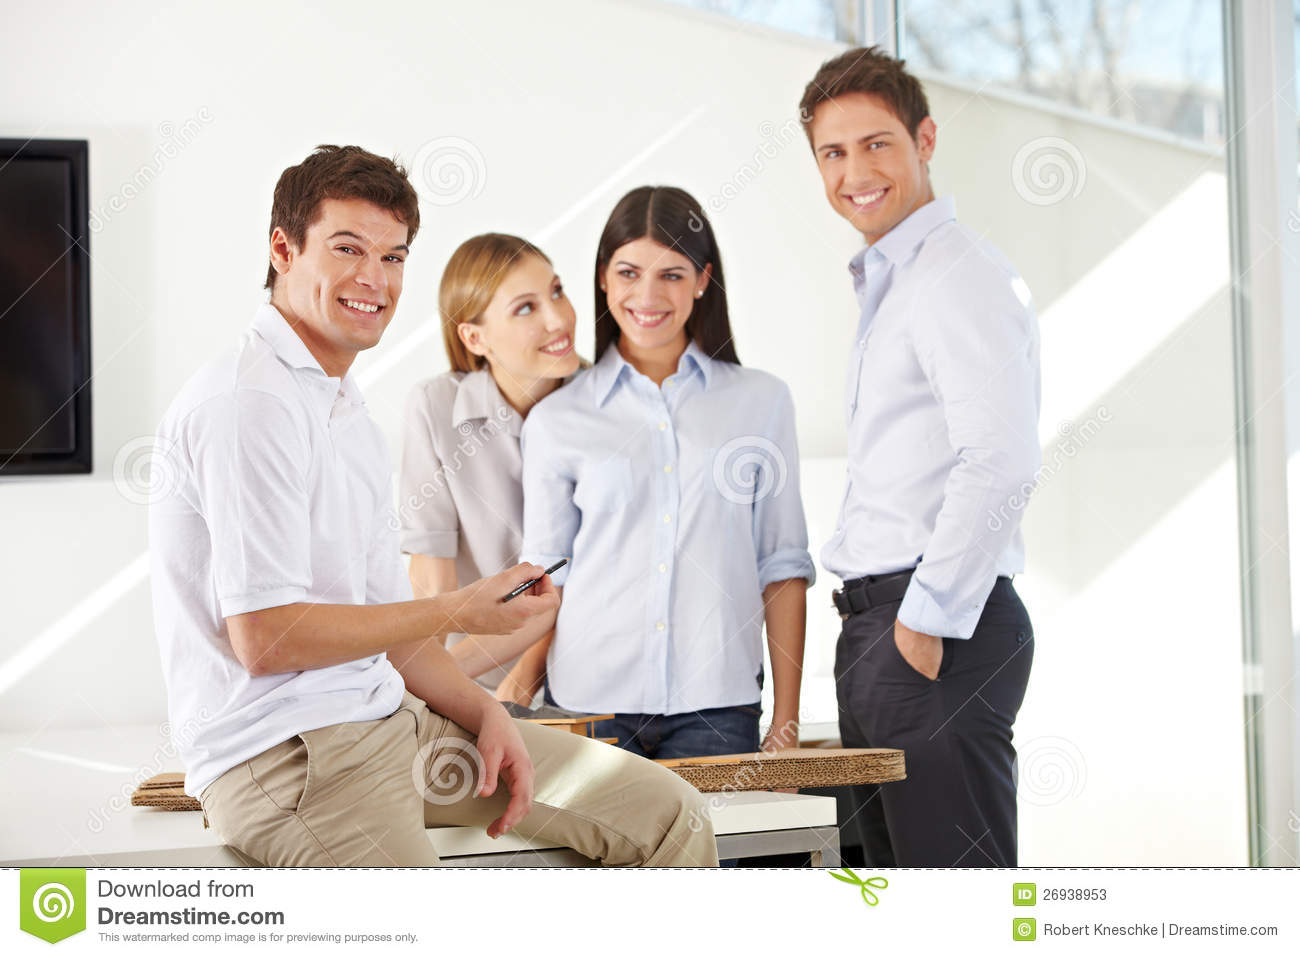 Smiling team of business architects